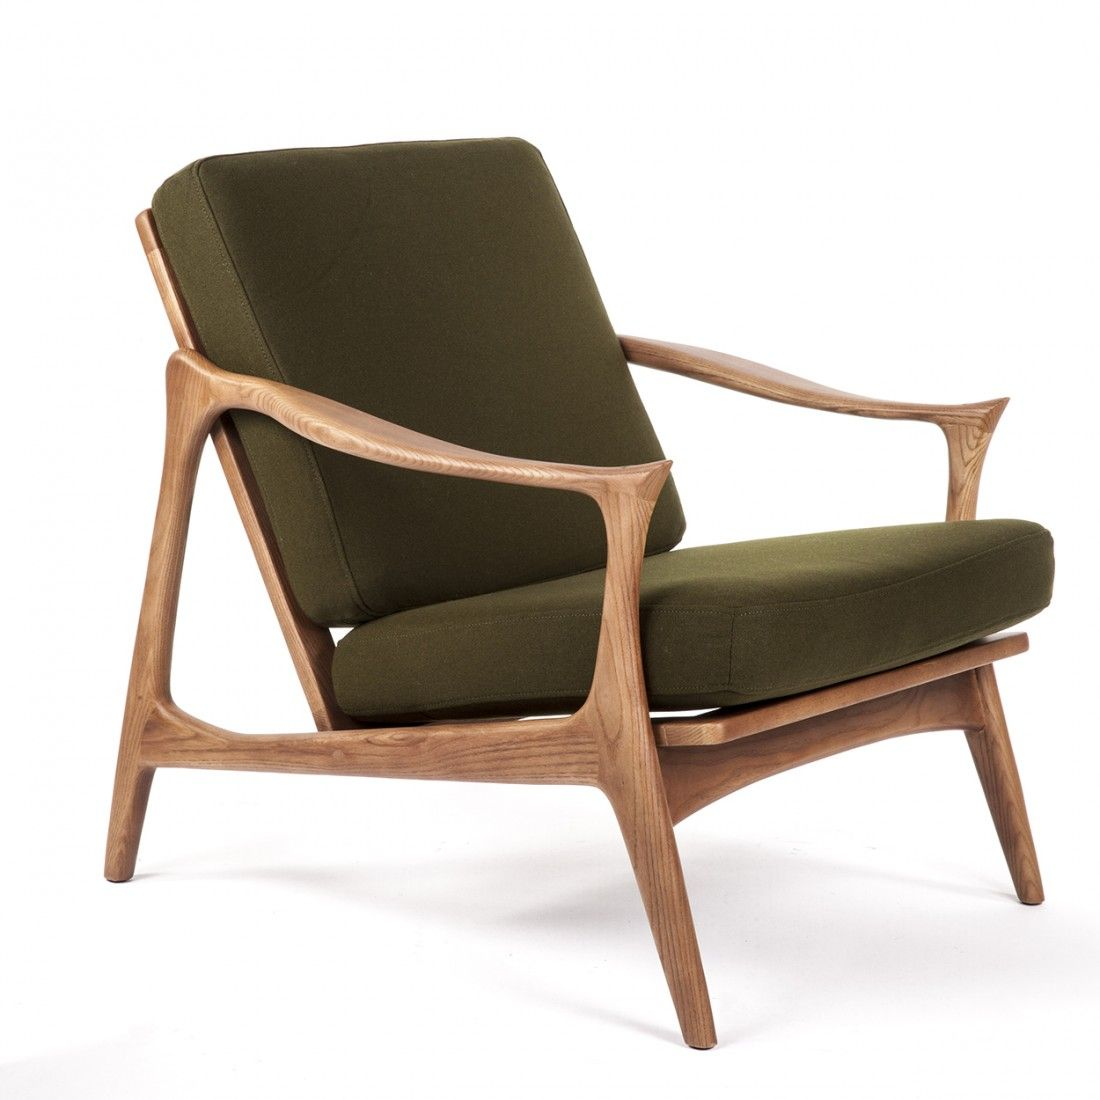 Elegant Mid Century Replica Mid Century Danish Model 711 Danish Lounge Chair Replica    Green By Fredrik